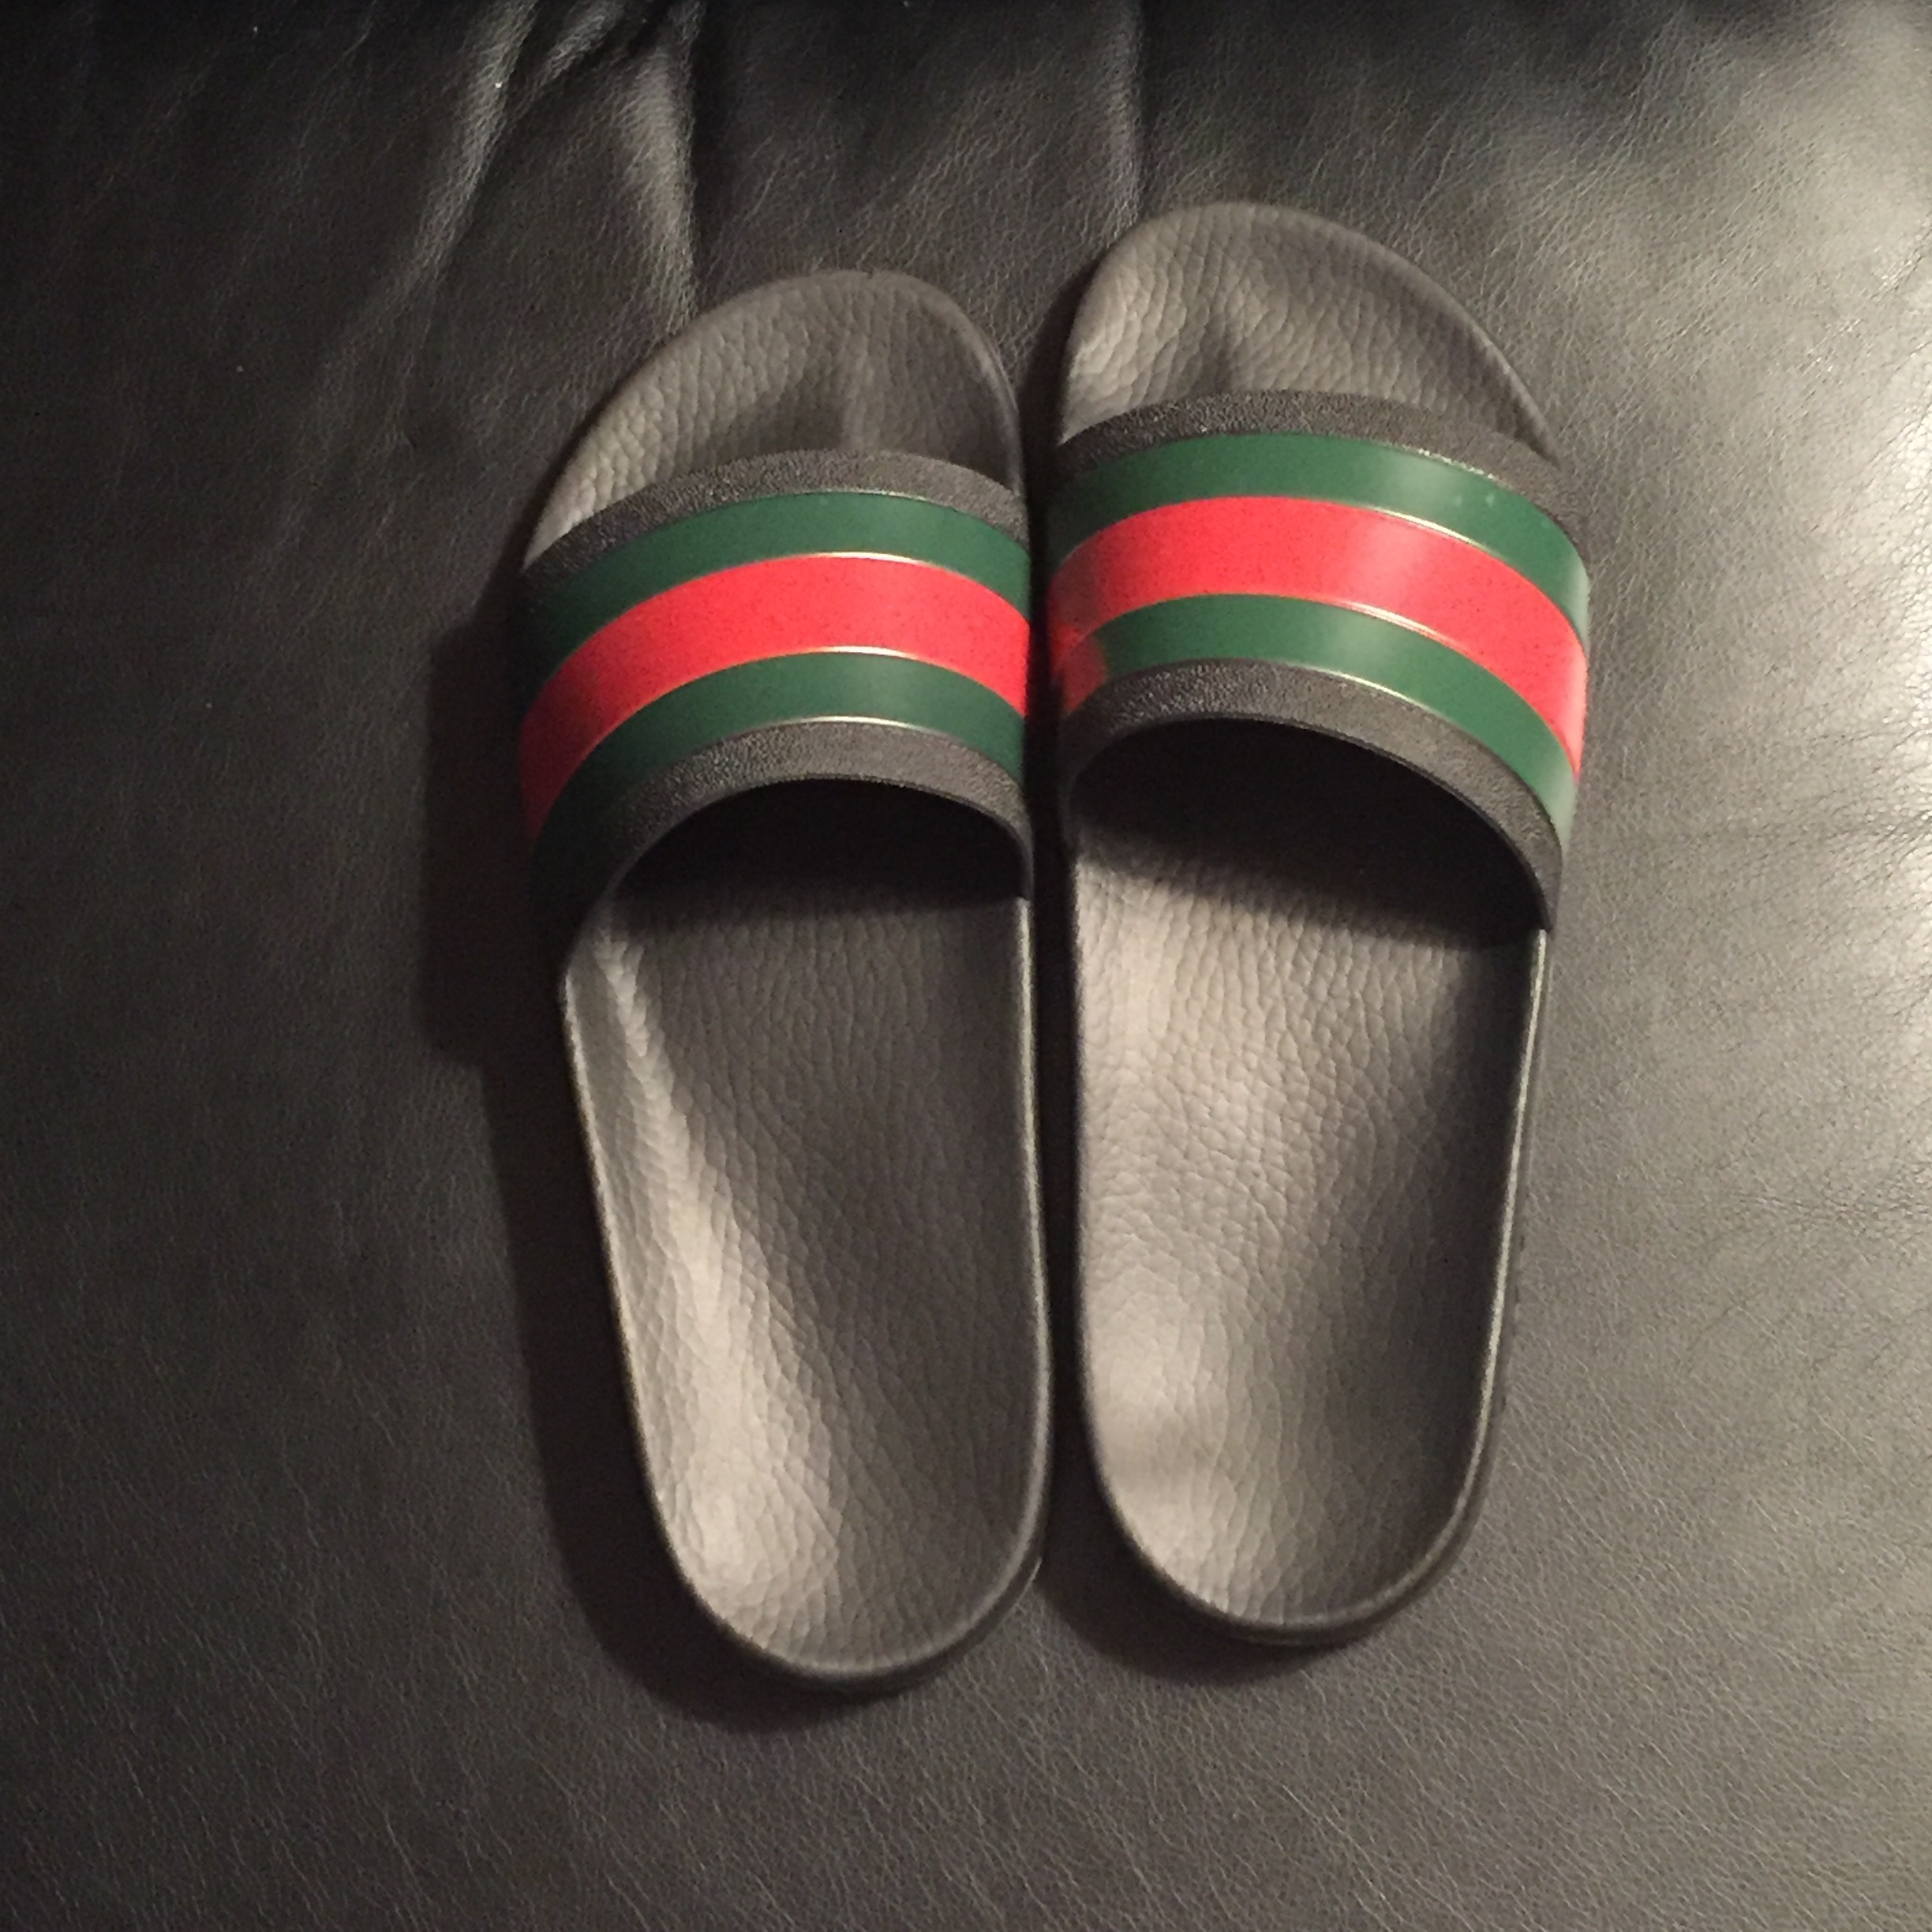 32253fe5232 Gucci Gucci Flip Flops Size 9.5 - for Sale - Grailed